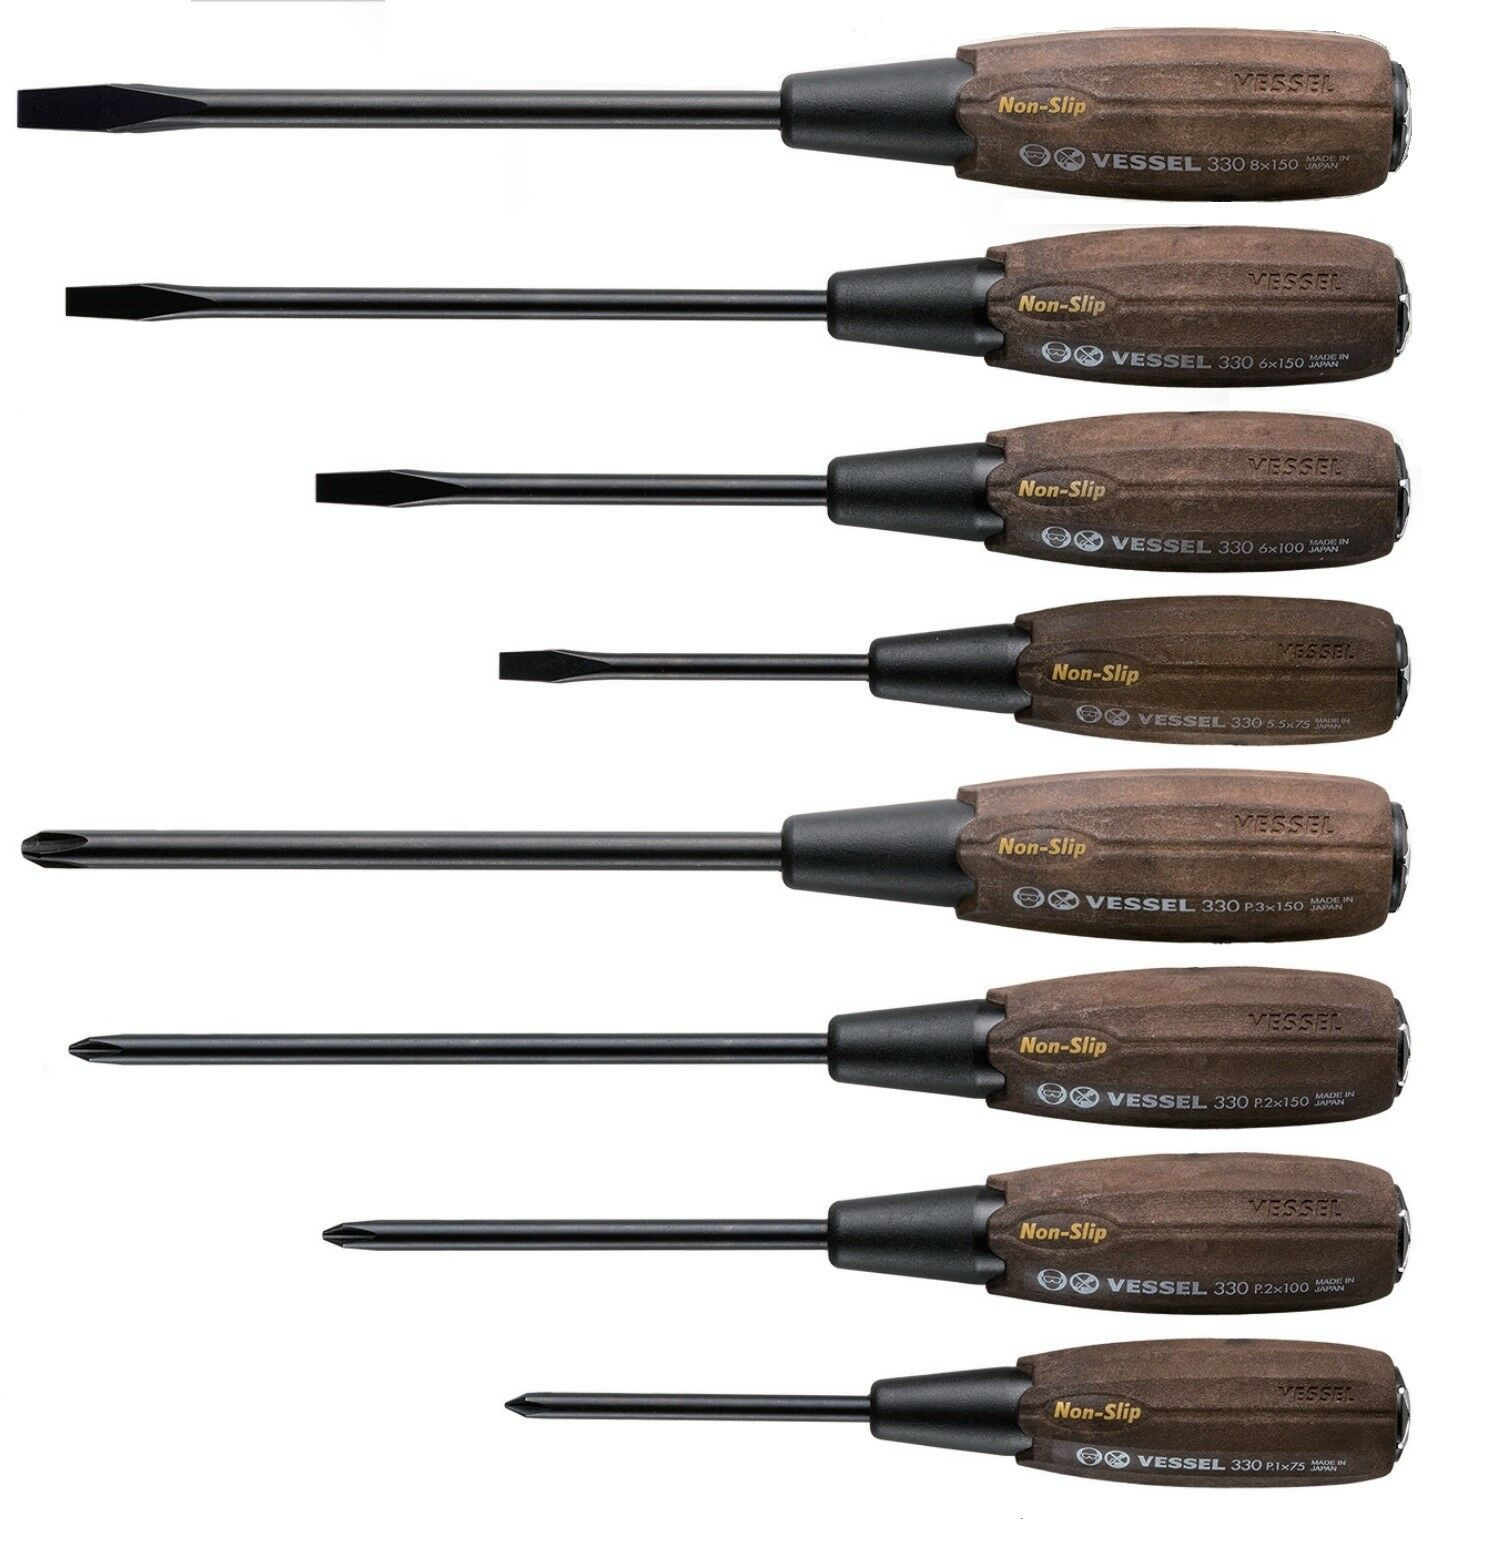 VESSEL / WOOD COMPO TANG-THRU SCREWDRIVER SET 8PCS / B-330-SET / MADE IN JAPAN